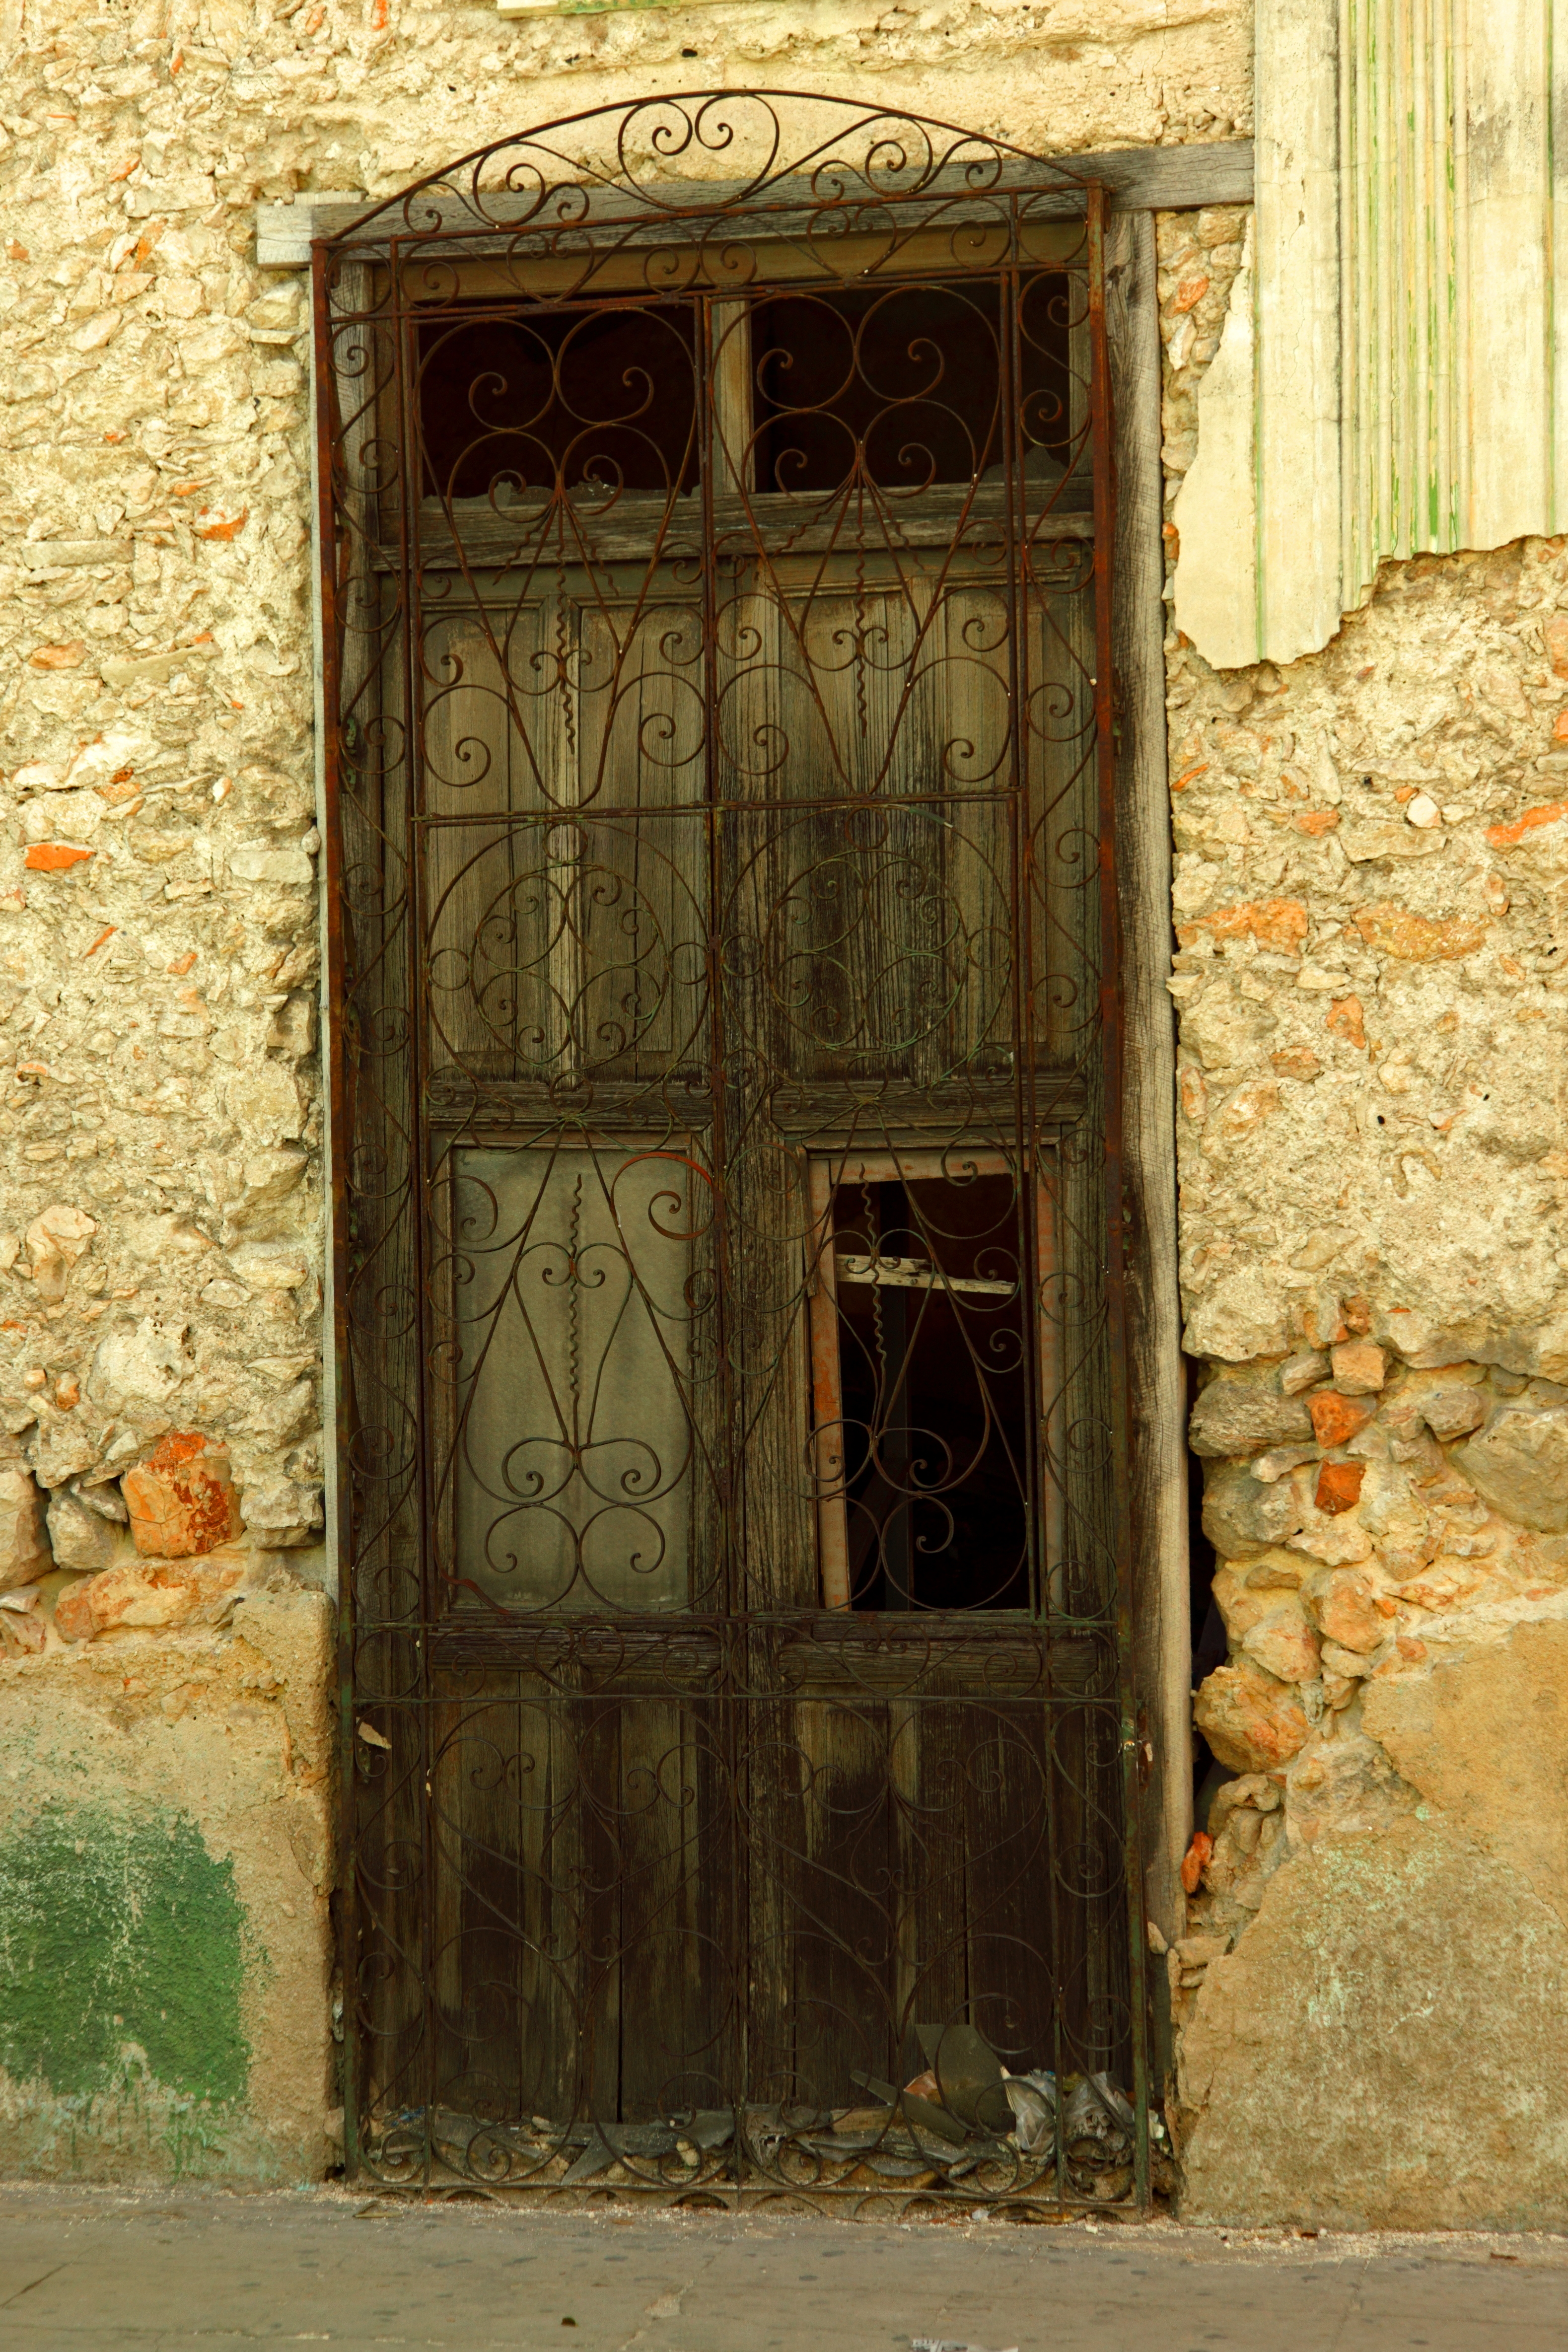 4737 #BC9C0F Published April 9 2012 At 3158 × 4737 In Rustic Doors Of Calle 60 image Rustic Wooden Doors 39533158